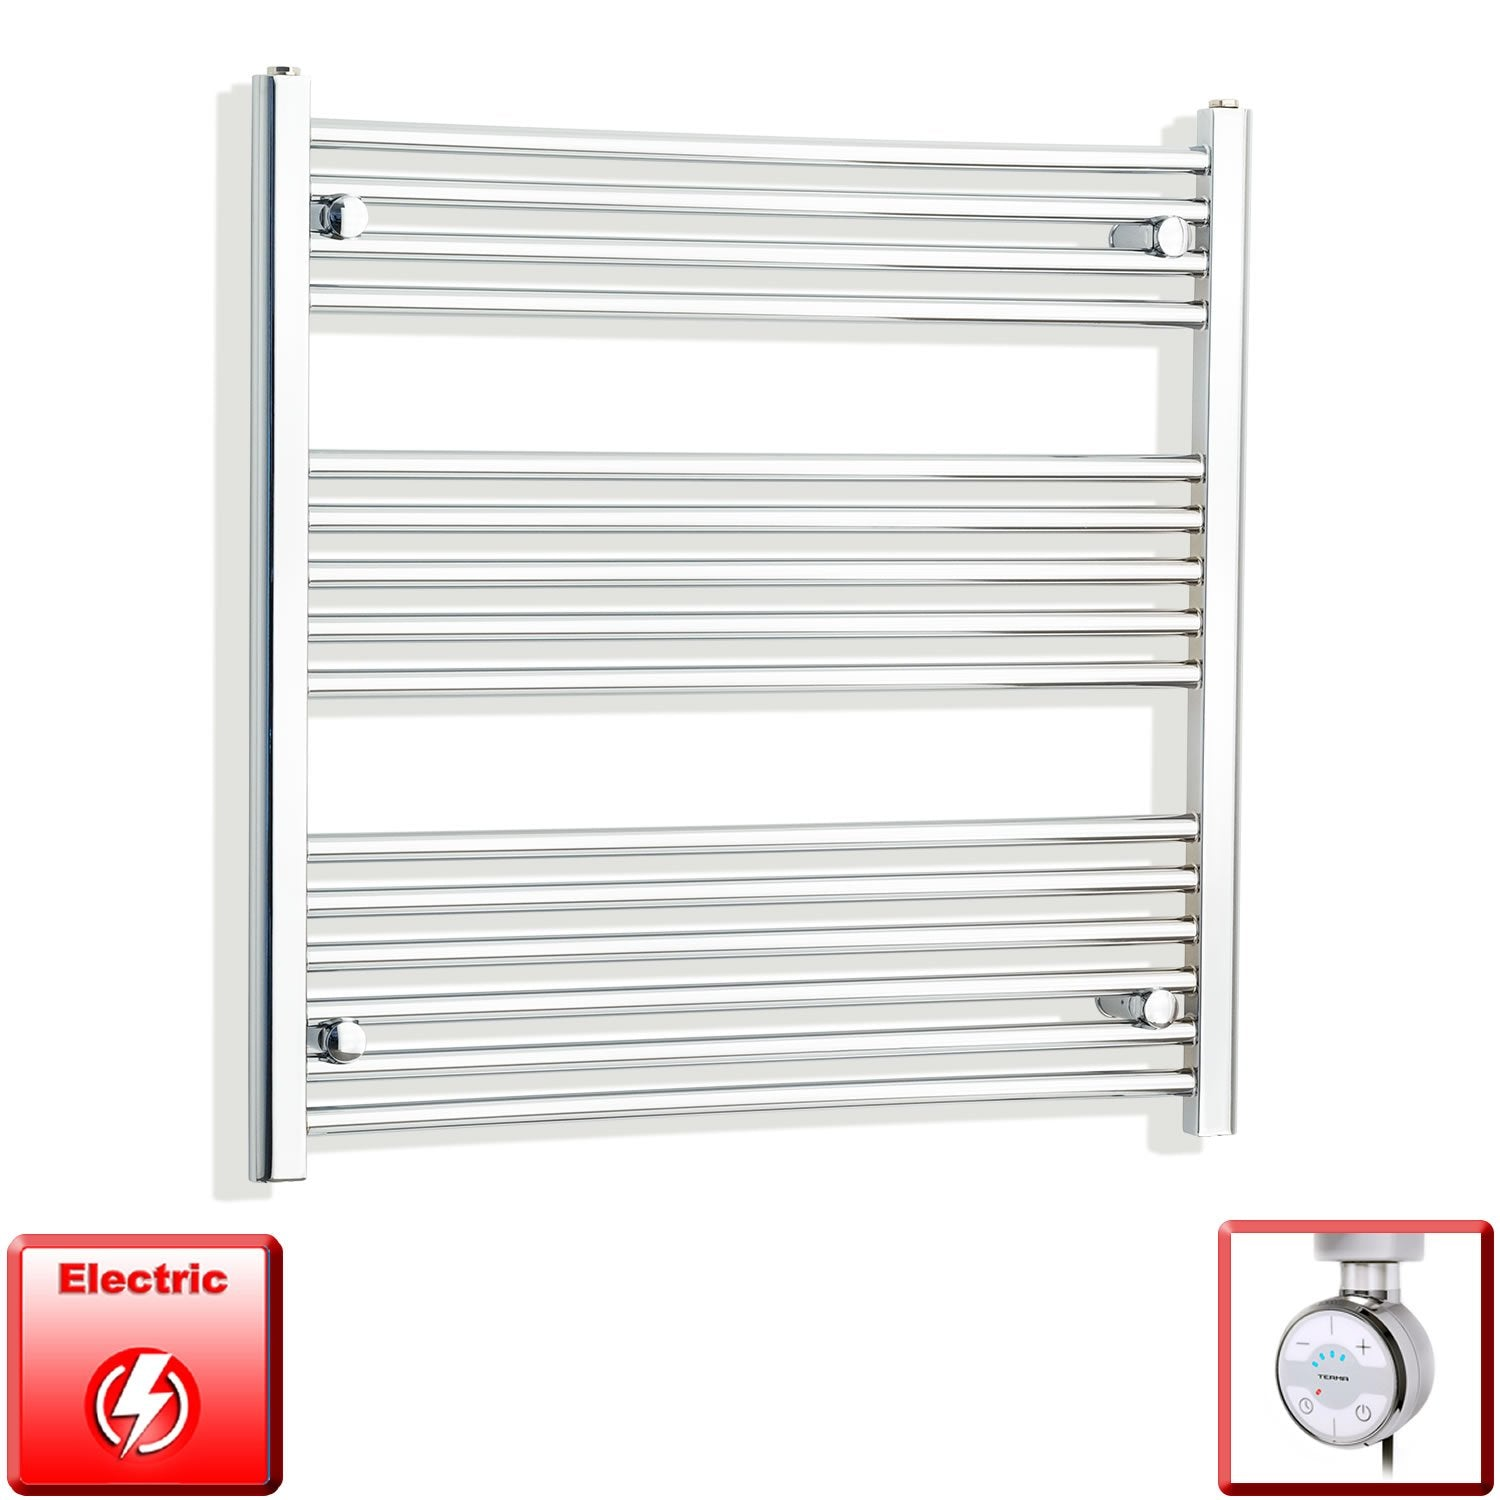 750mm Wide 800mm High Flat Or Curved Chrome Pre-Filled Electric Heated Towel Rail Radiator HTR,MOA Thermostatic Element / Straight